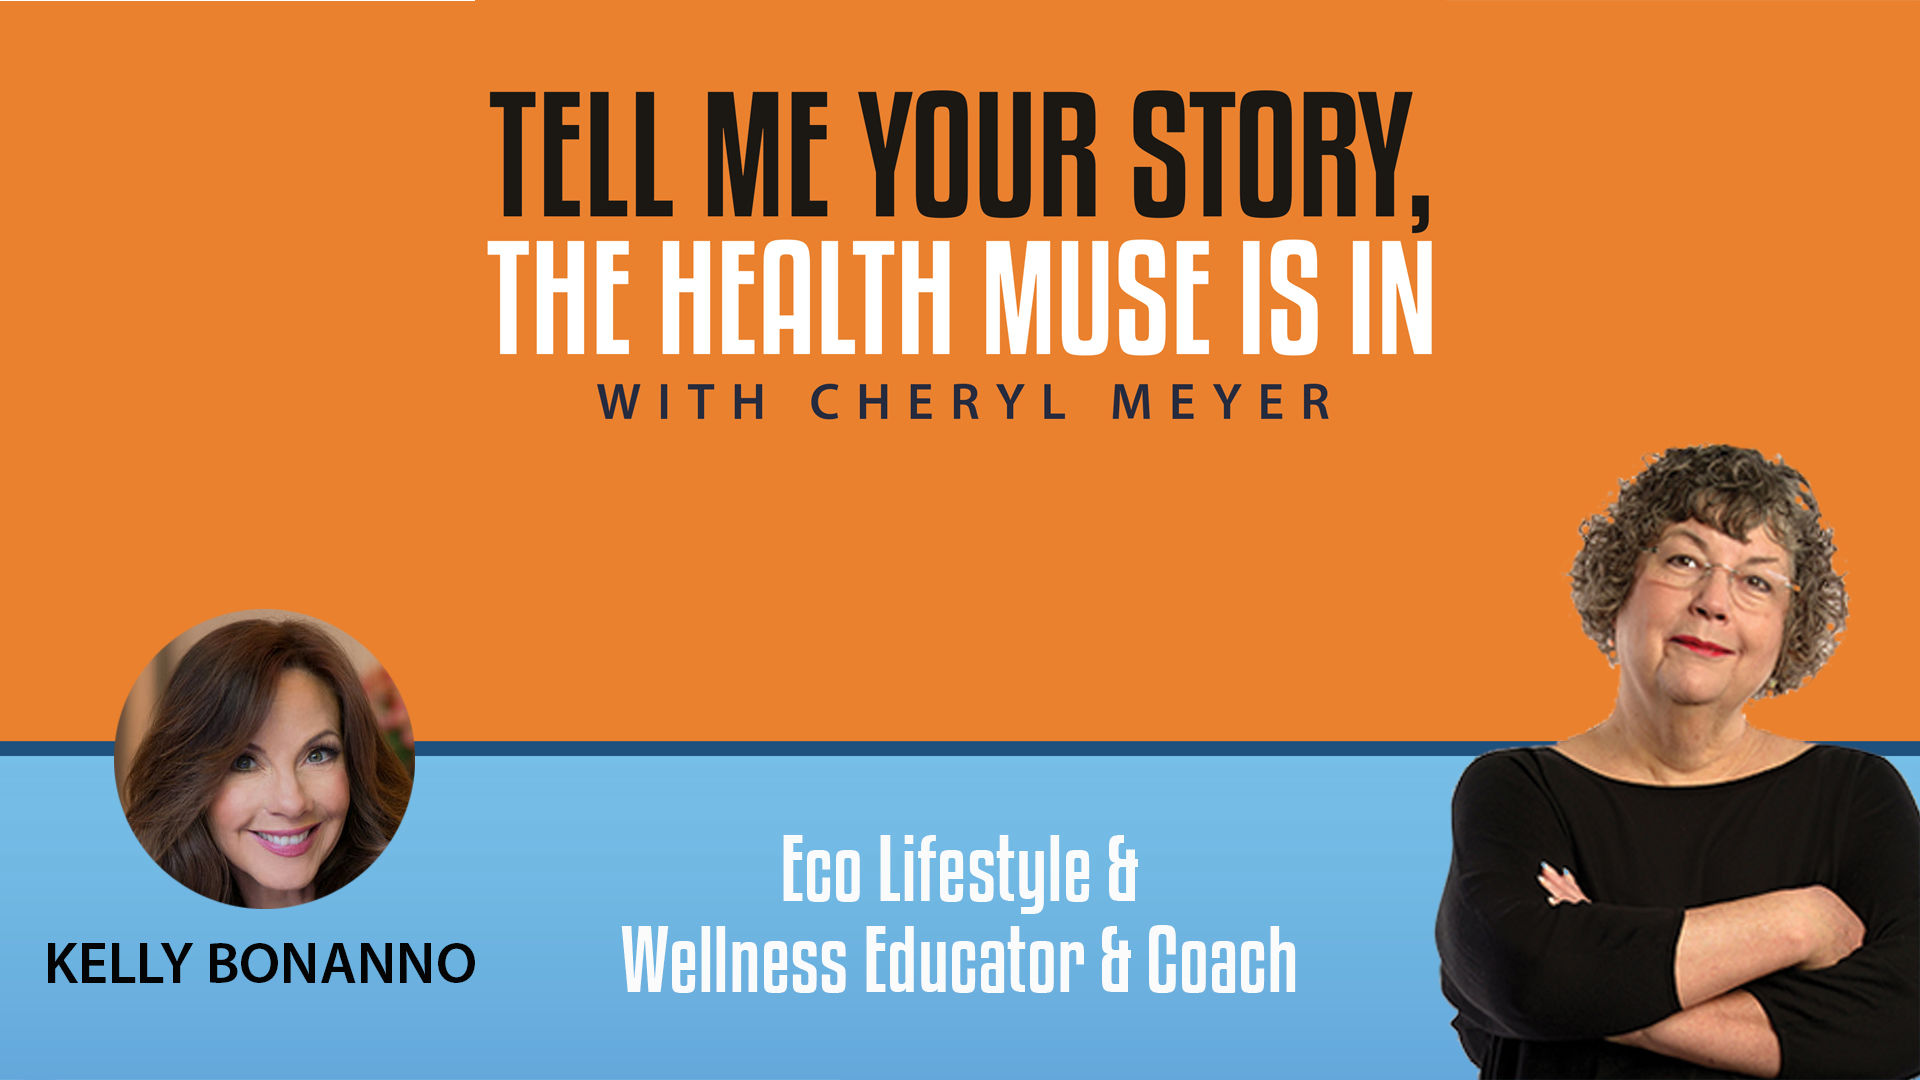 Tell Me Your Story Kelly Bonanno-Eco Lifestyle Educator and Wellness Coach